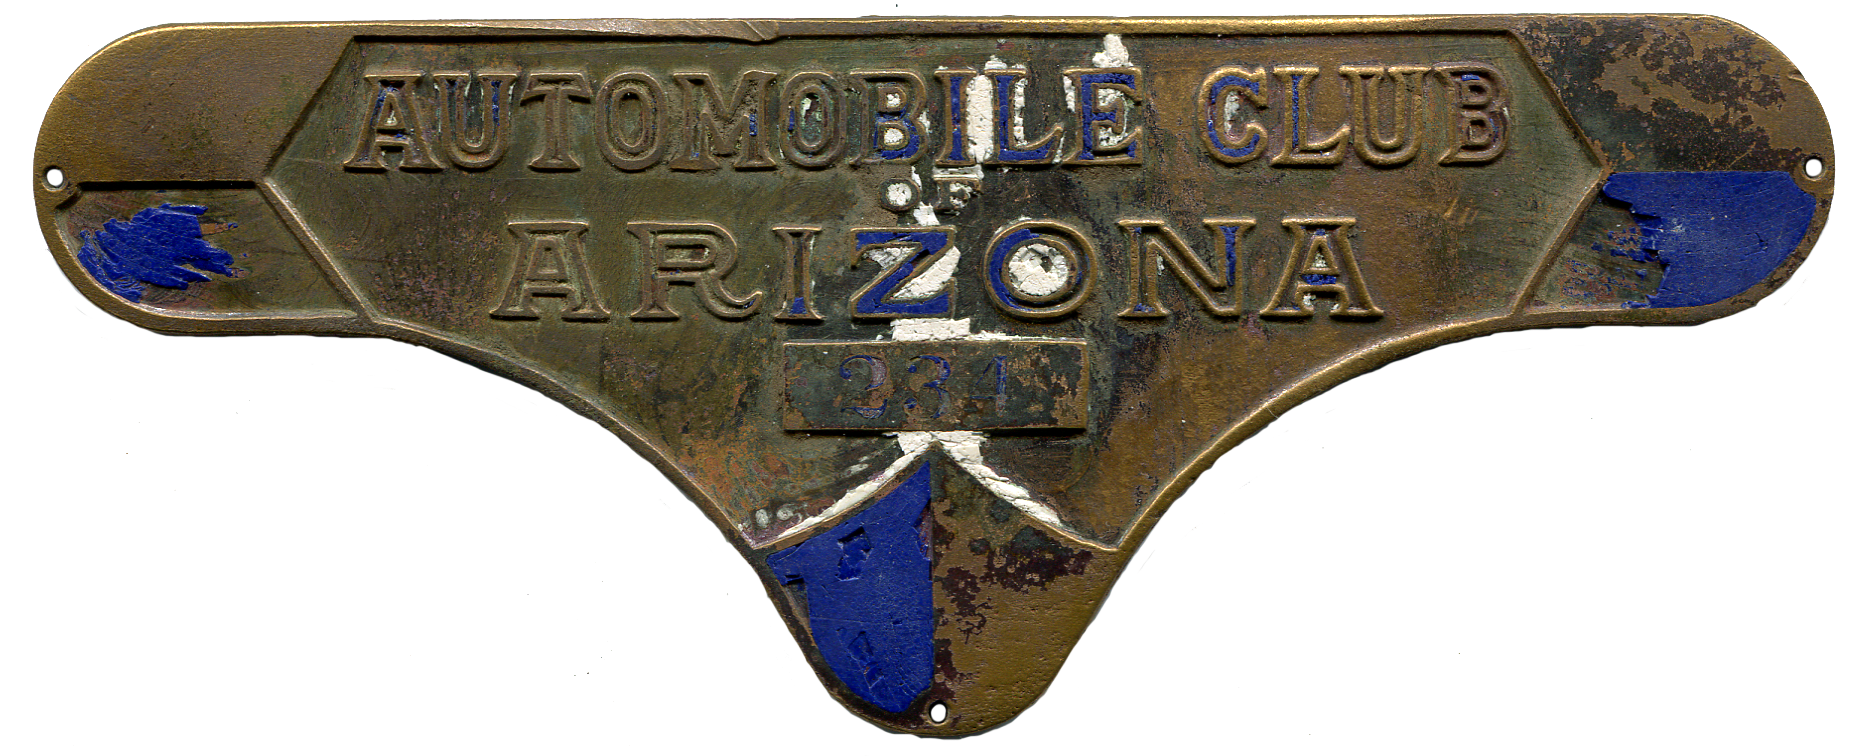 Automobile Club of Arizona Emblem